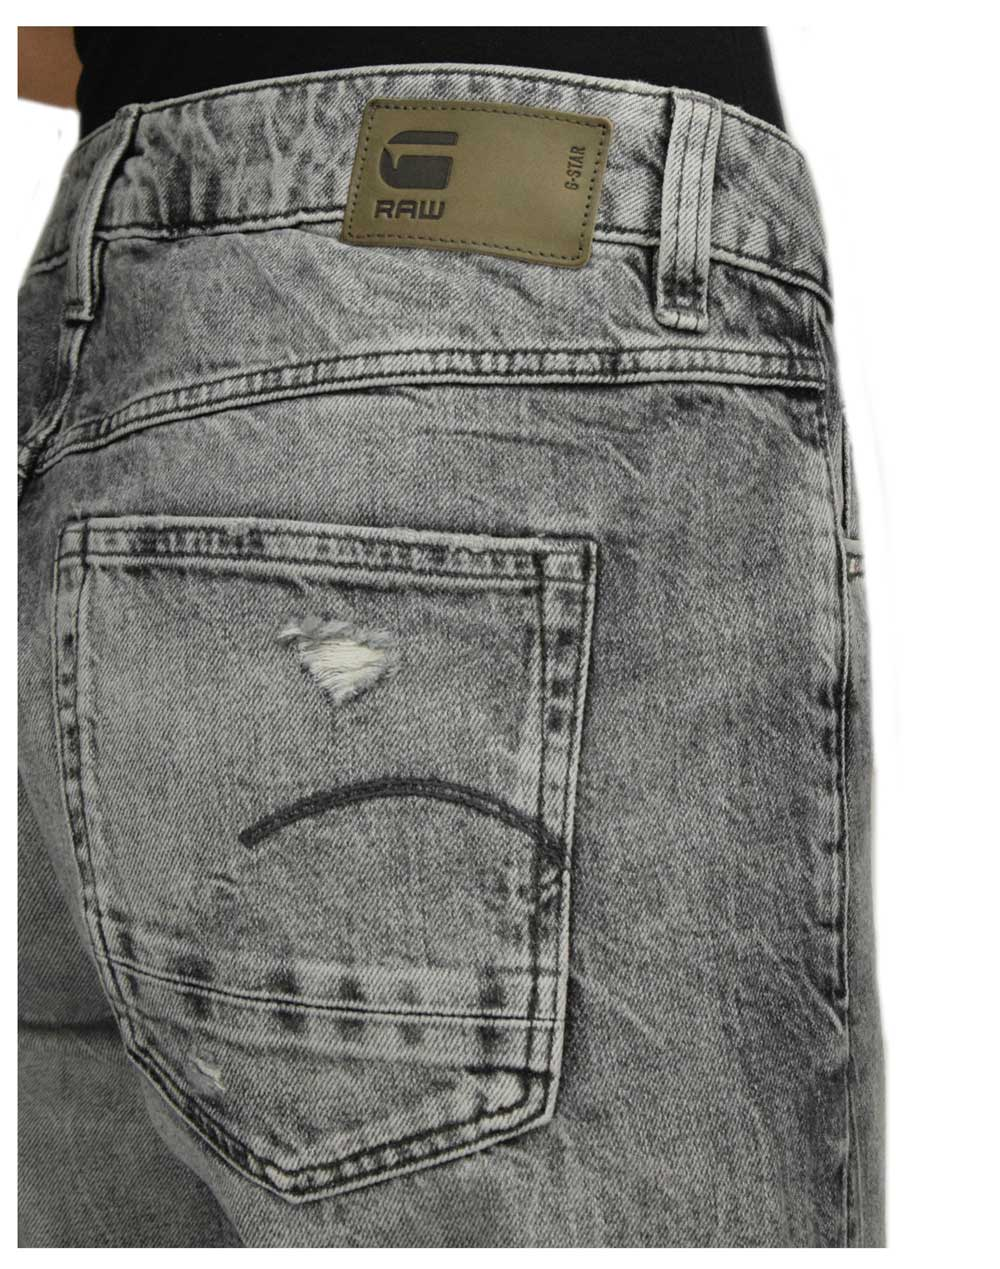 G-Star Raw Kate Boyfriend (D15264-C049-B162) Sun Faded Ripped Basalt